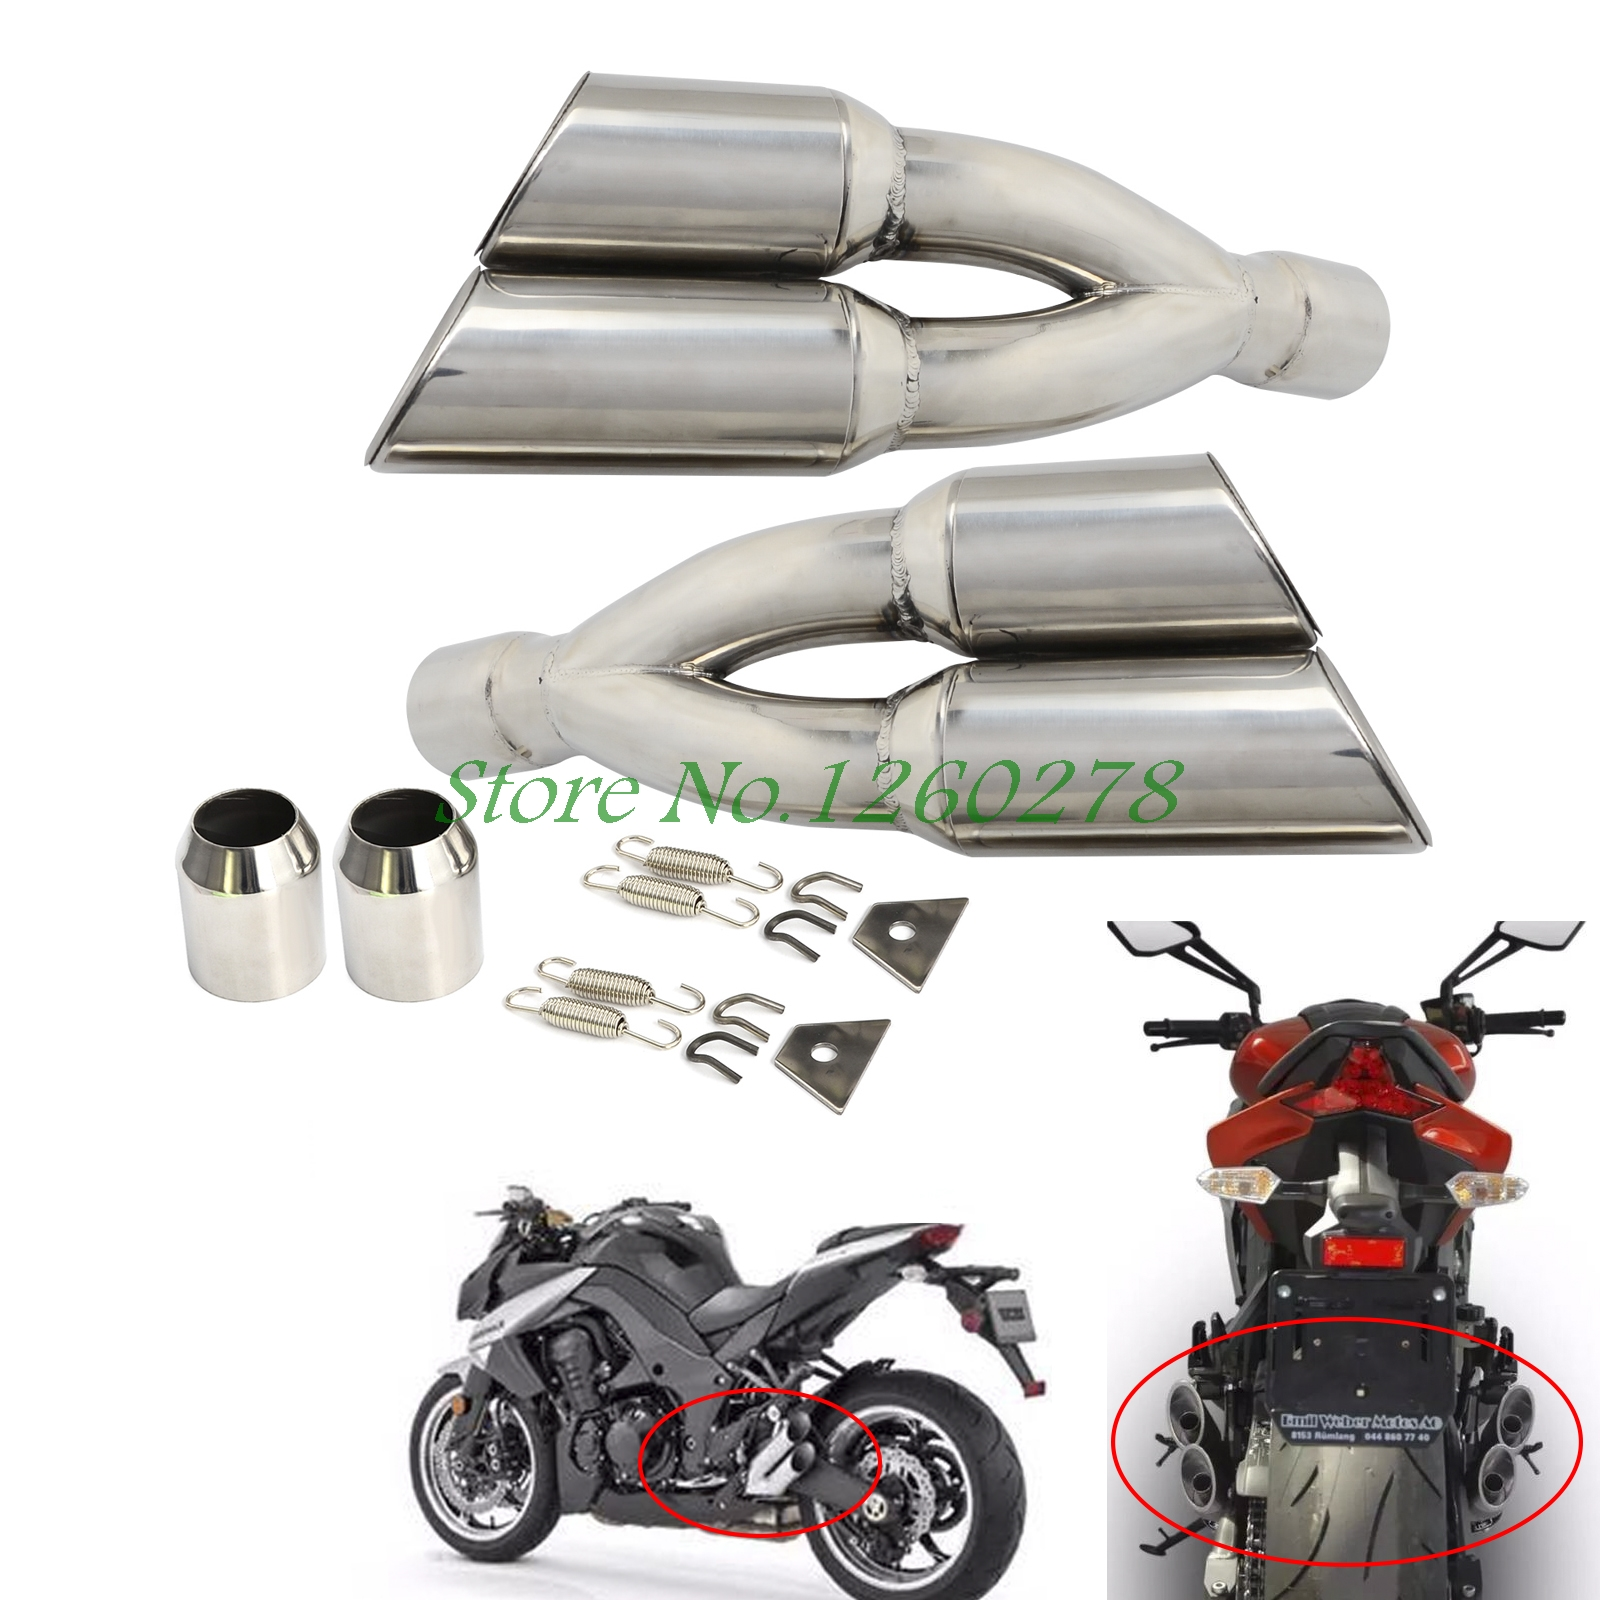 Universal Dual Exhaust Muffler Pipe Slip On For Motorcycle Motocross Supermoto Street Bike Scooter ATV Quad Dirt Bike Off Road belousov a security features of banknotes and other documents methods of authentication manual денежные билеты бланки ценных бумаг и документов